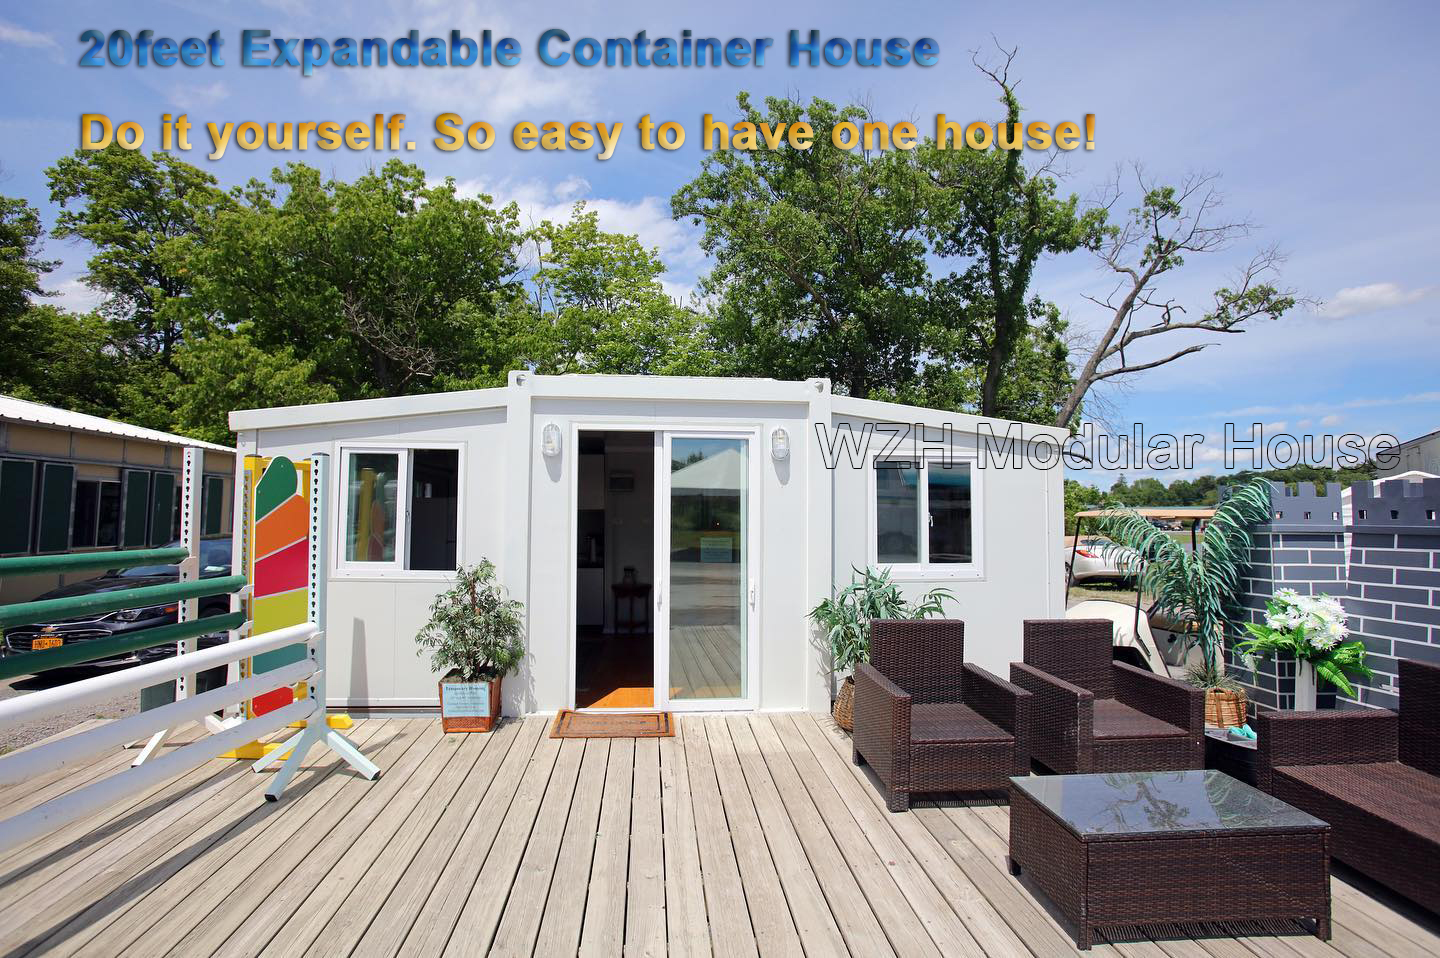 China Prefab Modular Homes House Porta Cabin Casa Australia 20ft And 40 Ft Foldable Expandable Container House For Sale Buy Modular Container House China Prefabricated Homes Australia Expandable Container House Prices Product On